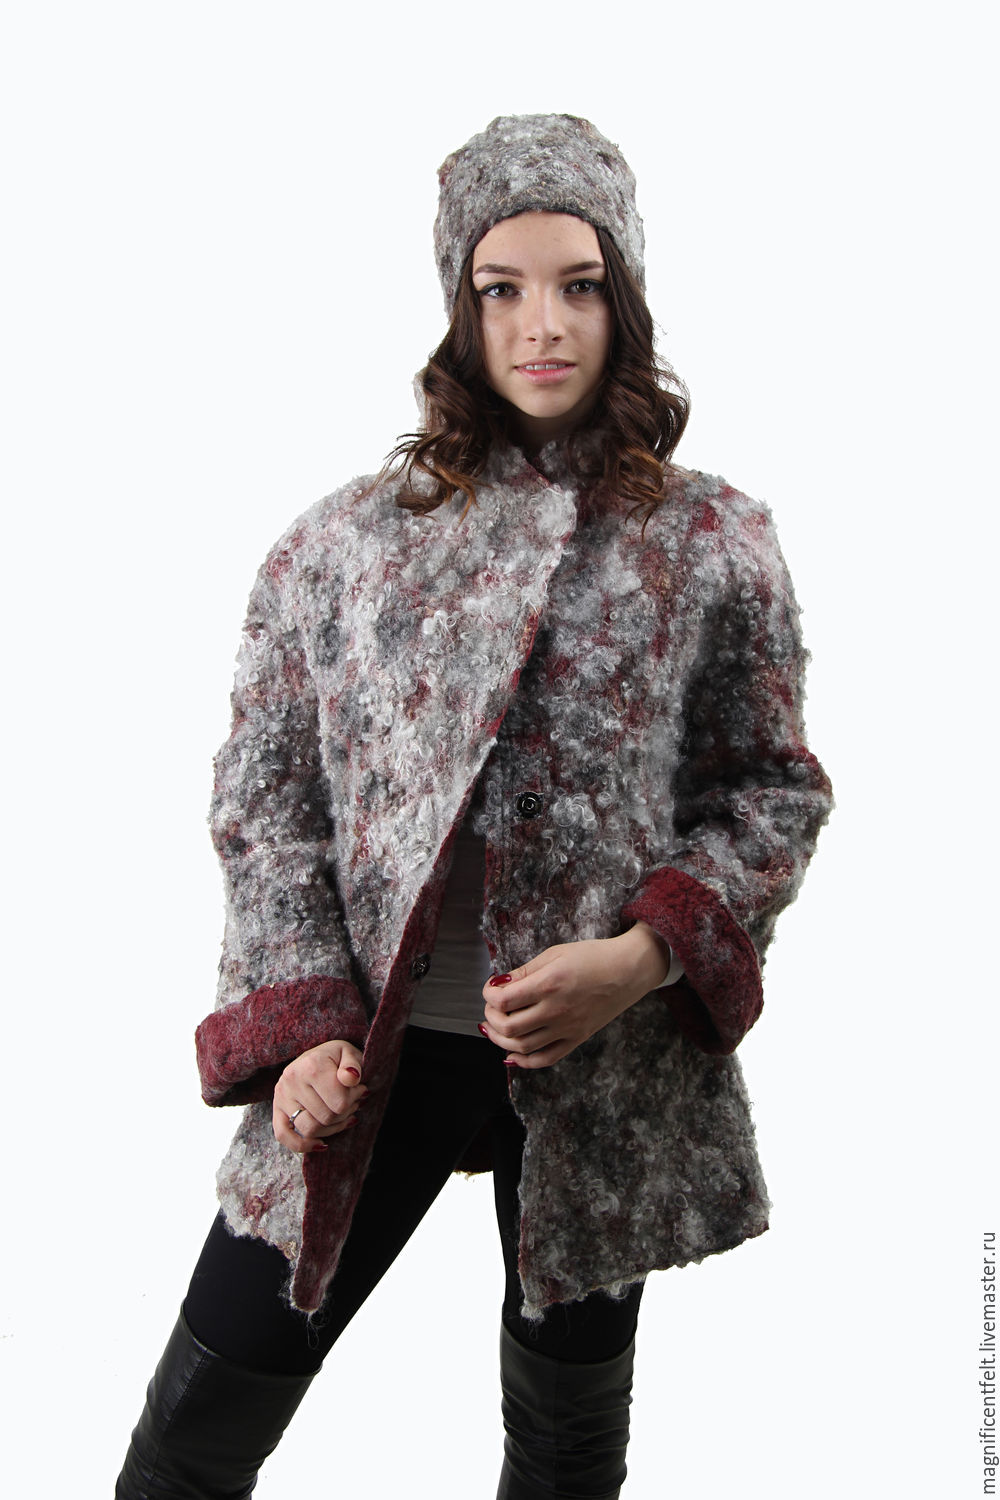 Pea jacket felt `All` ultima moda`.  Original, bold, warm. Comfortable for fall, in the winter to-5 degrees. Eco - fur. As it is used sheared different breeds of sheep (Gotland, Romney, Lincoln).